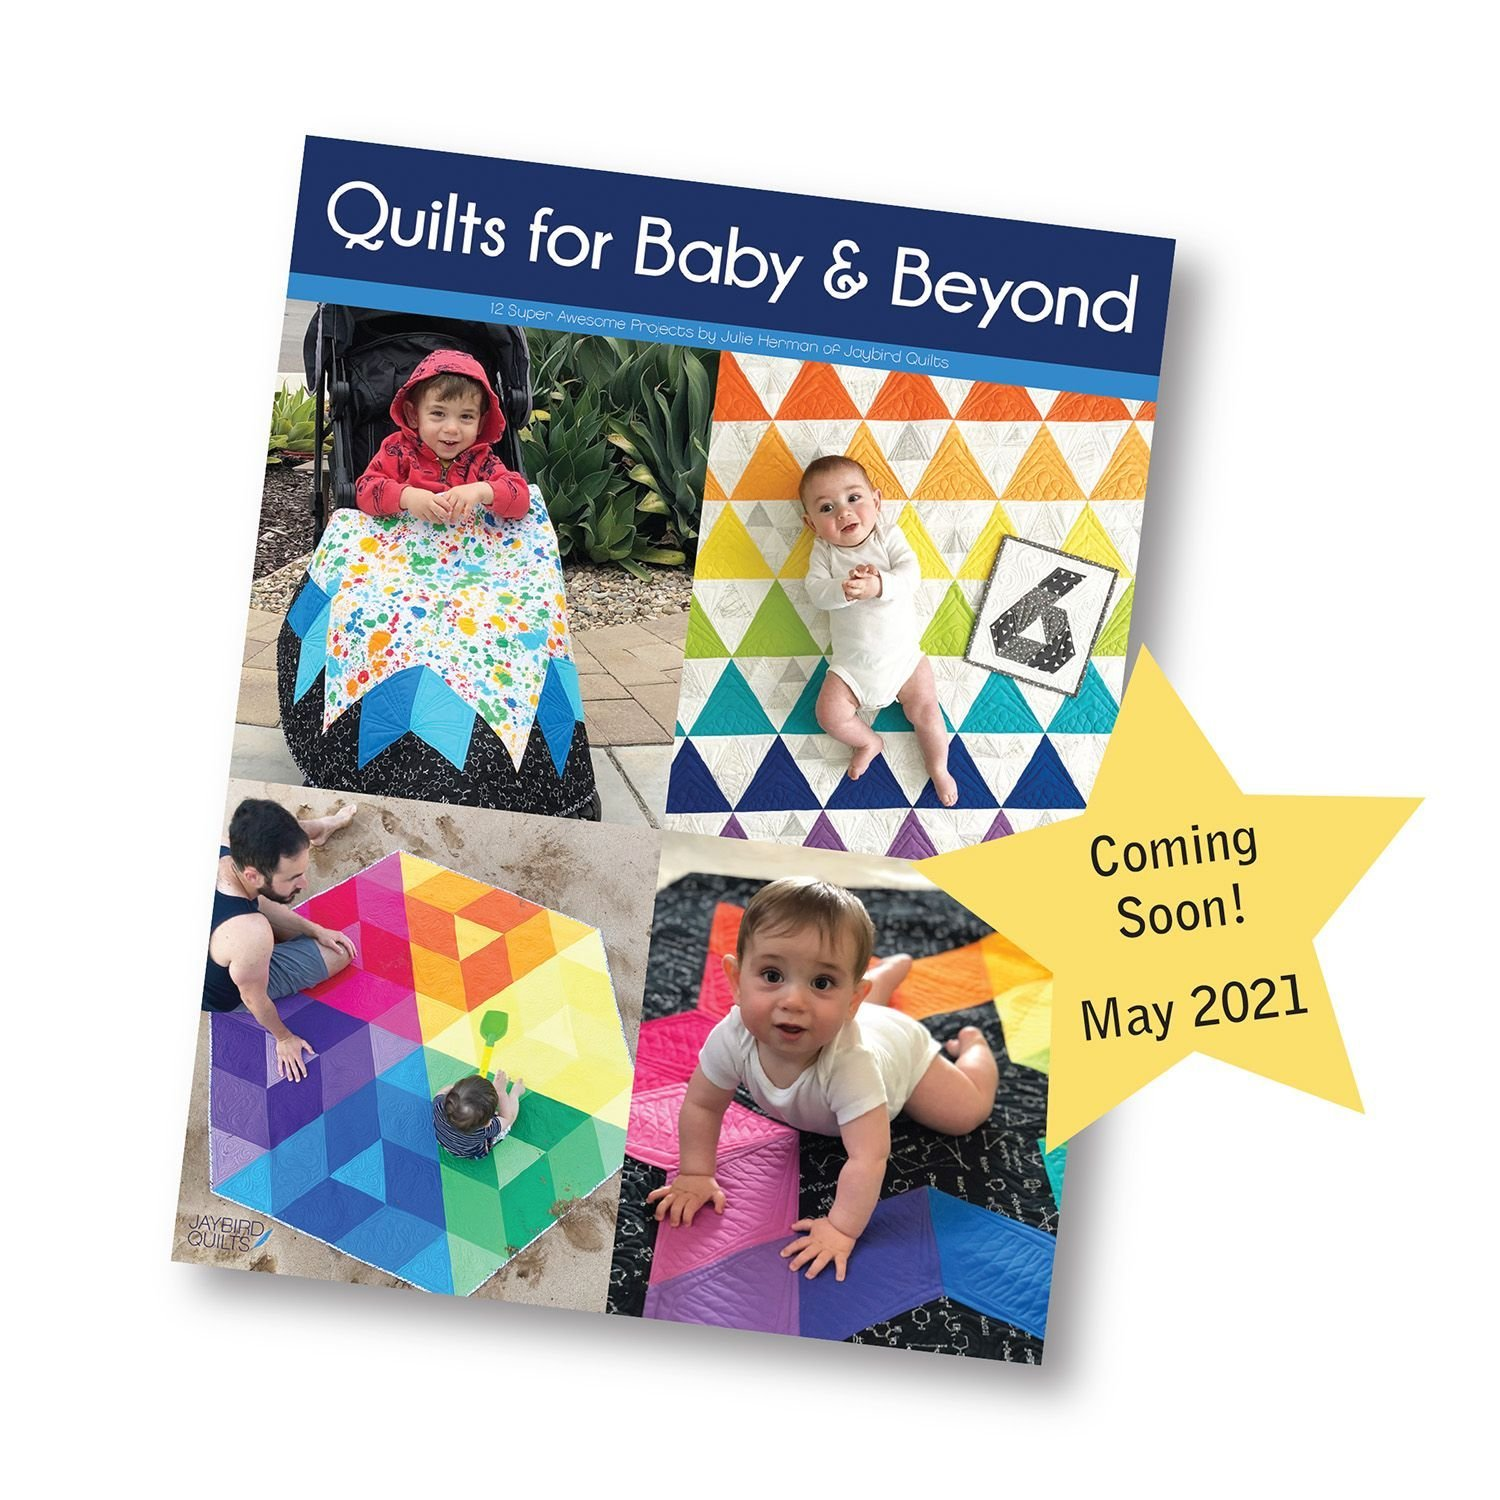 Quilts for Baby & Beyond book by Jaybird Quilts